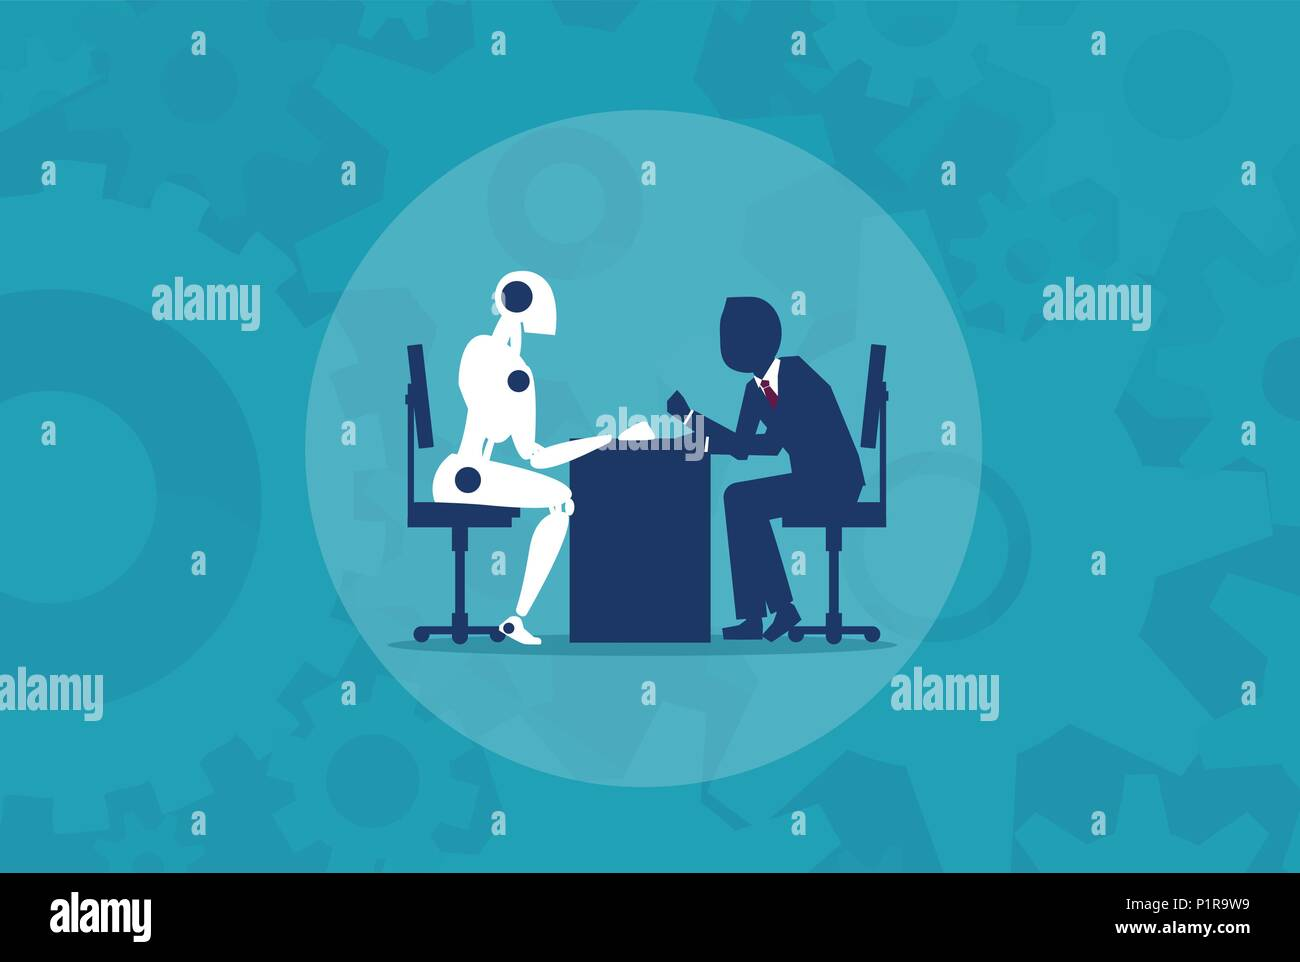 Humans vs Robots. Business illustration flat style vector - Stock Vector